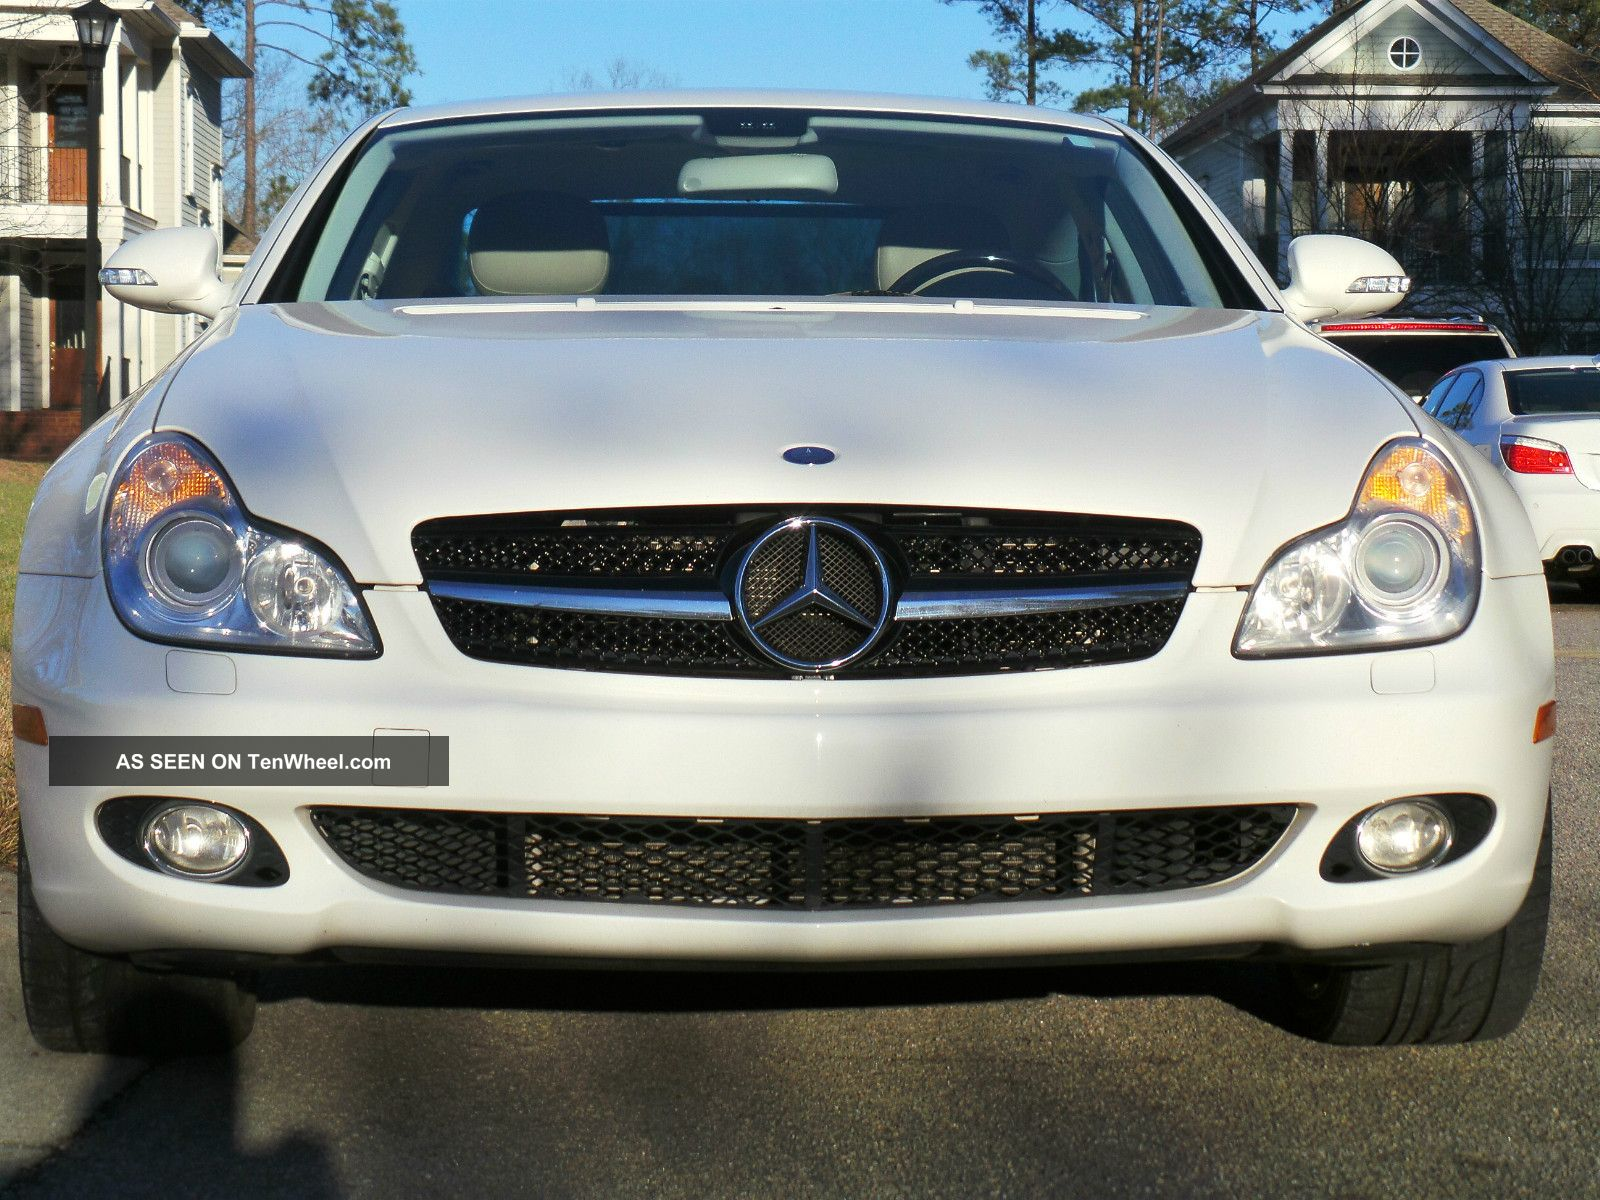 2006 mercedes benz cls500 base sedan 4 door 5 0l amg. Black Bedroom Furniture Sets. Home Design Ideas